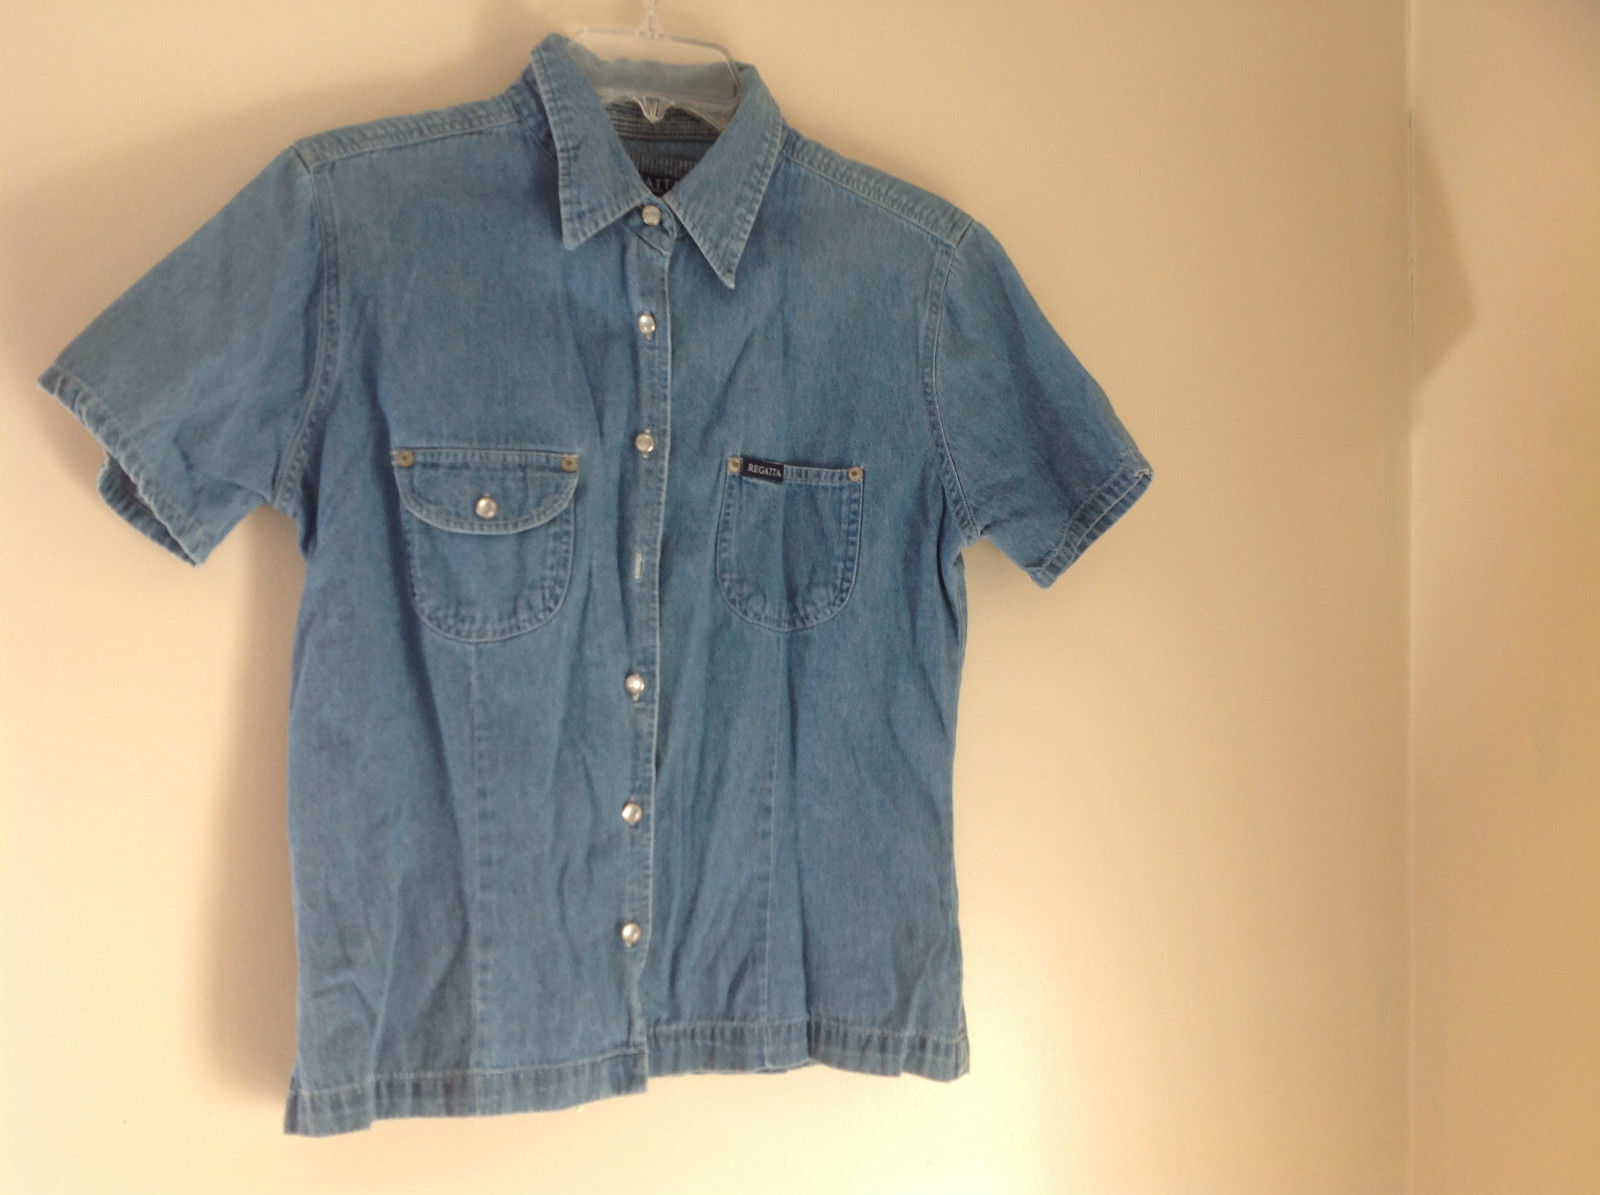 Regatta New York Denim Button Up Short Sleeve Shirt 2 Pockets on Chest Size M